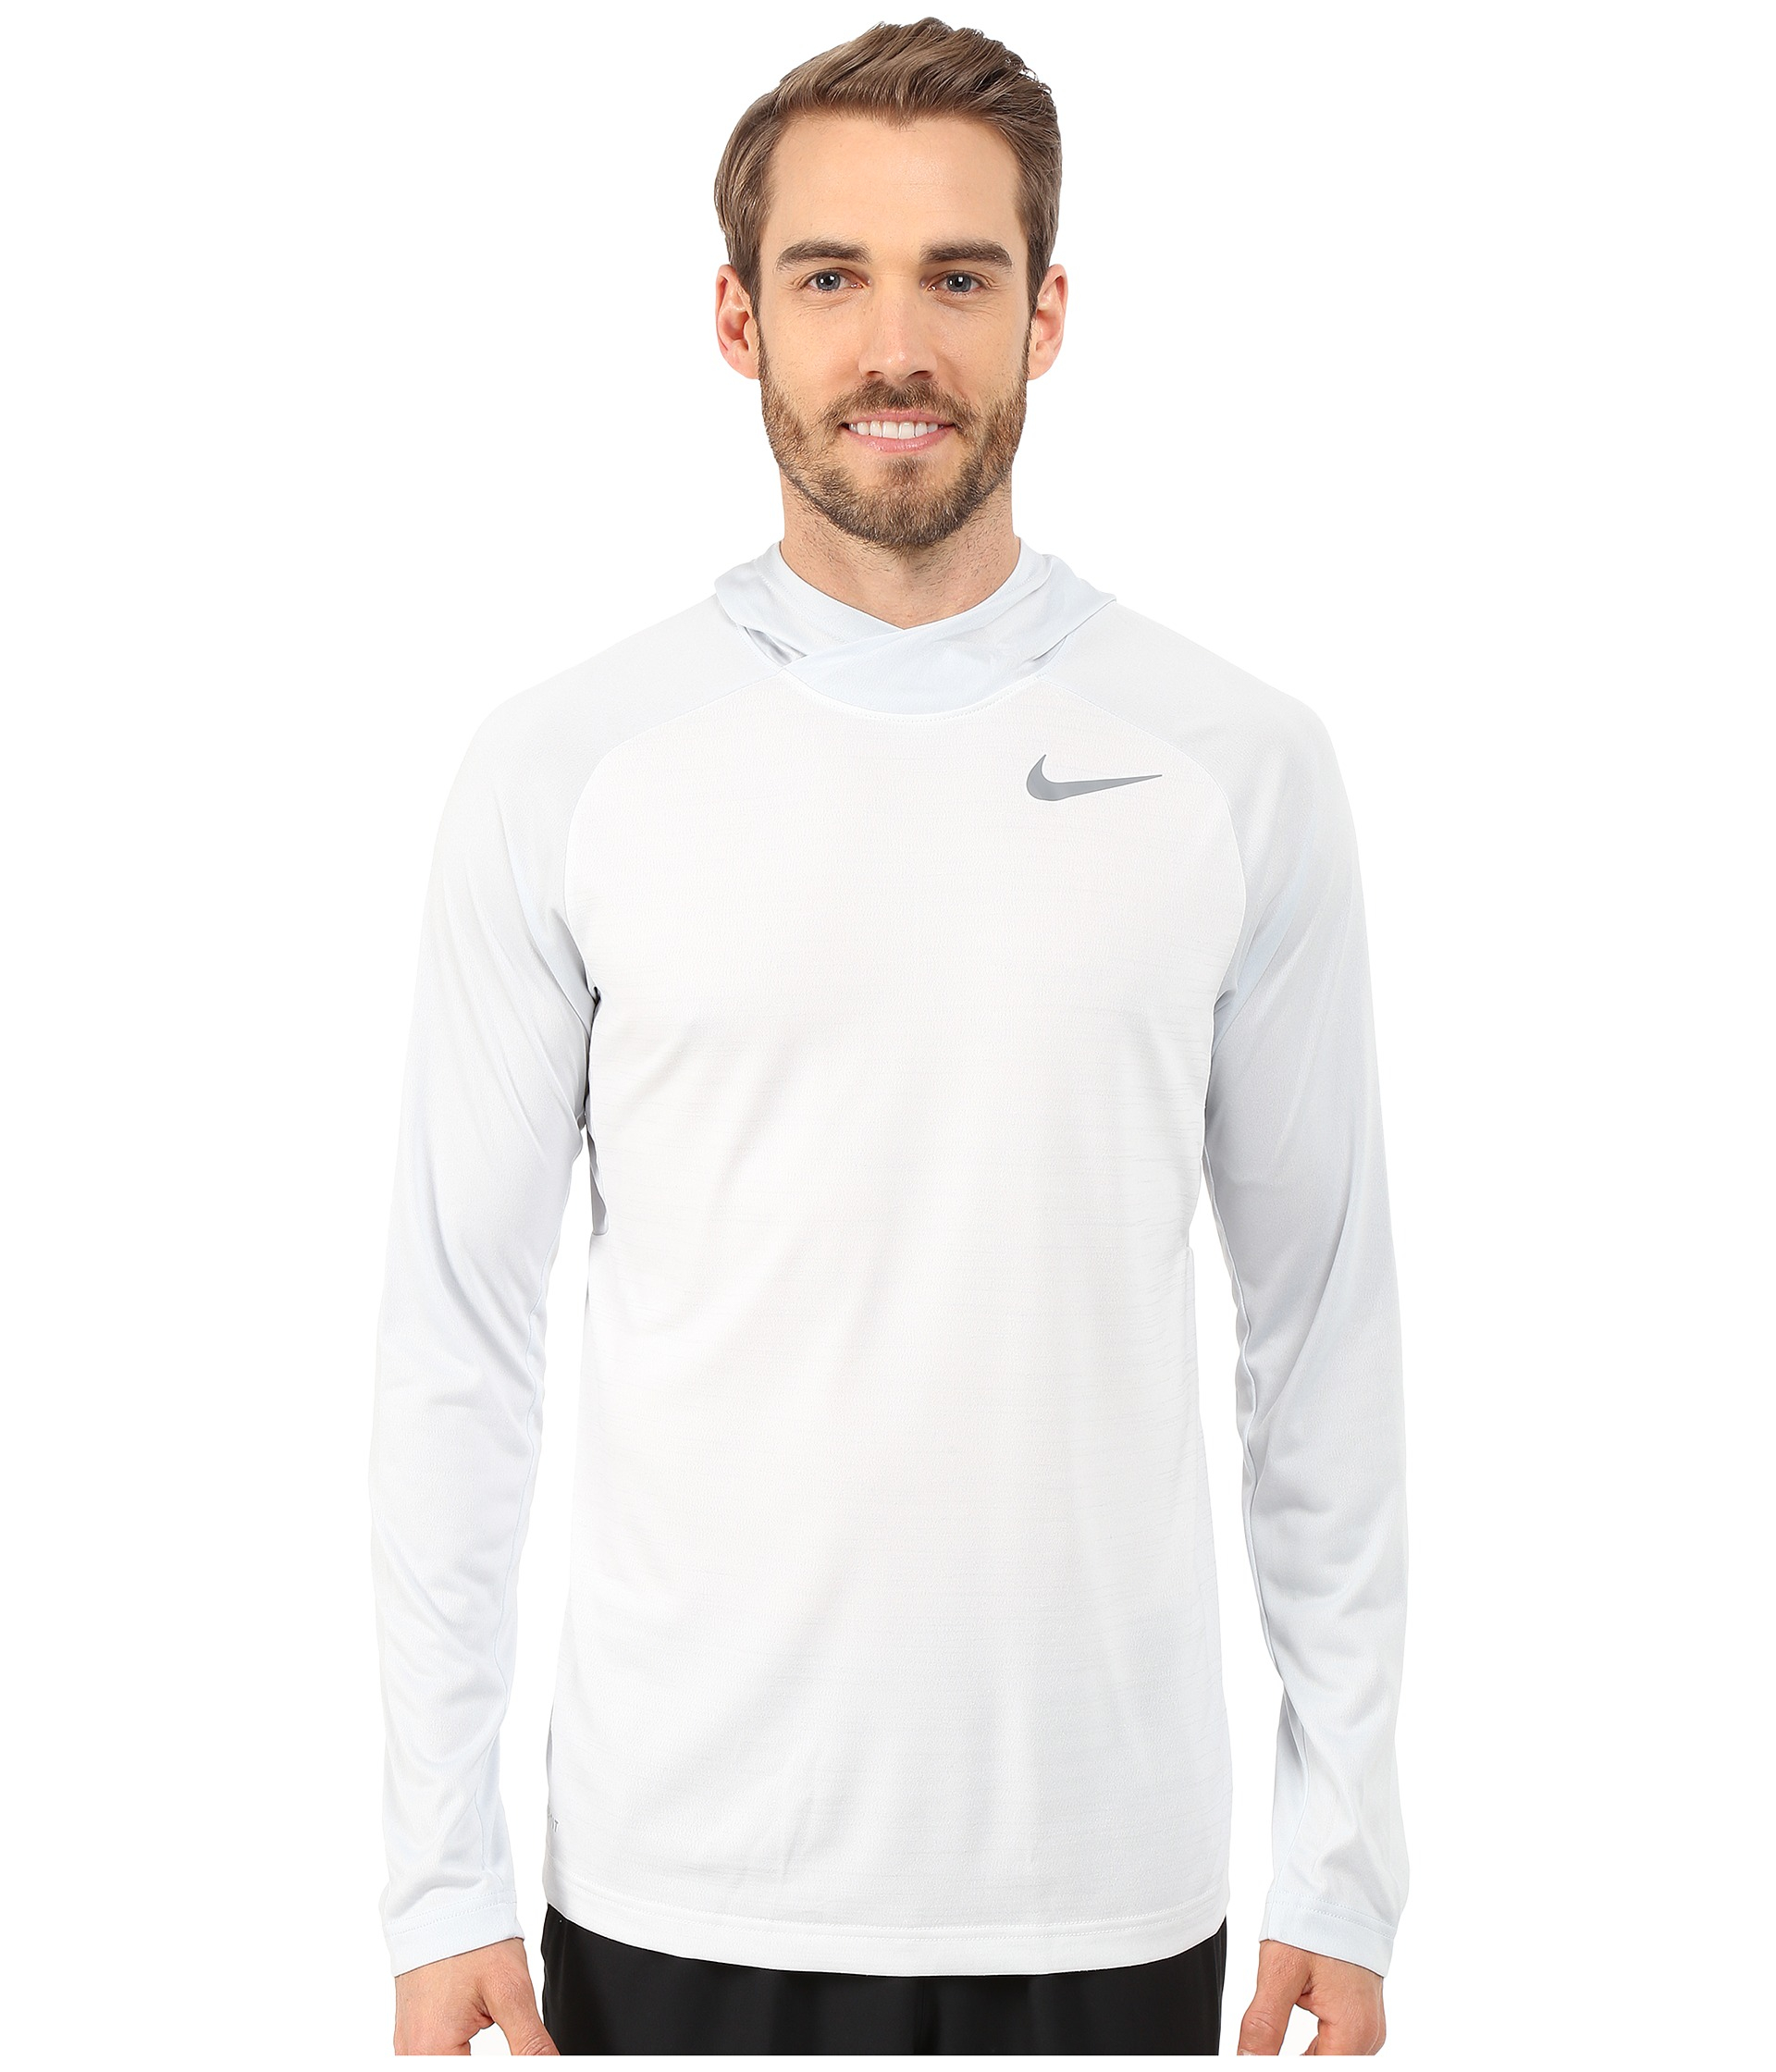 4541cc88 Nike Dri-fit™ Touch Long Sleeve Hoodie in White for Men - Lyst